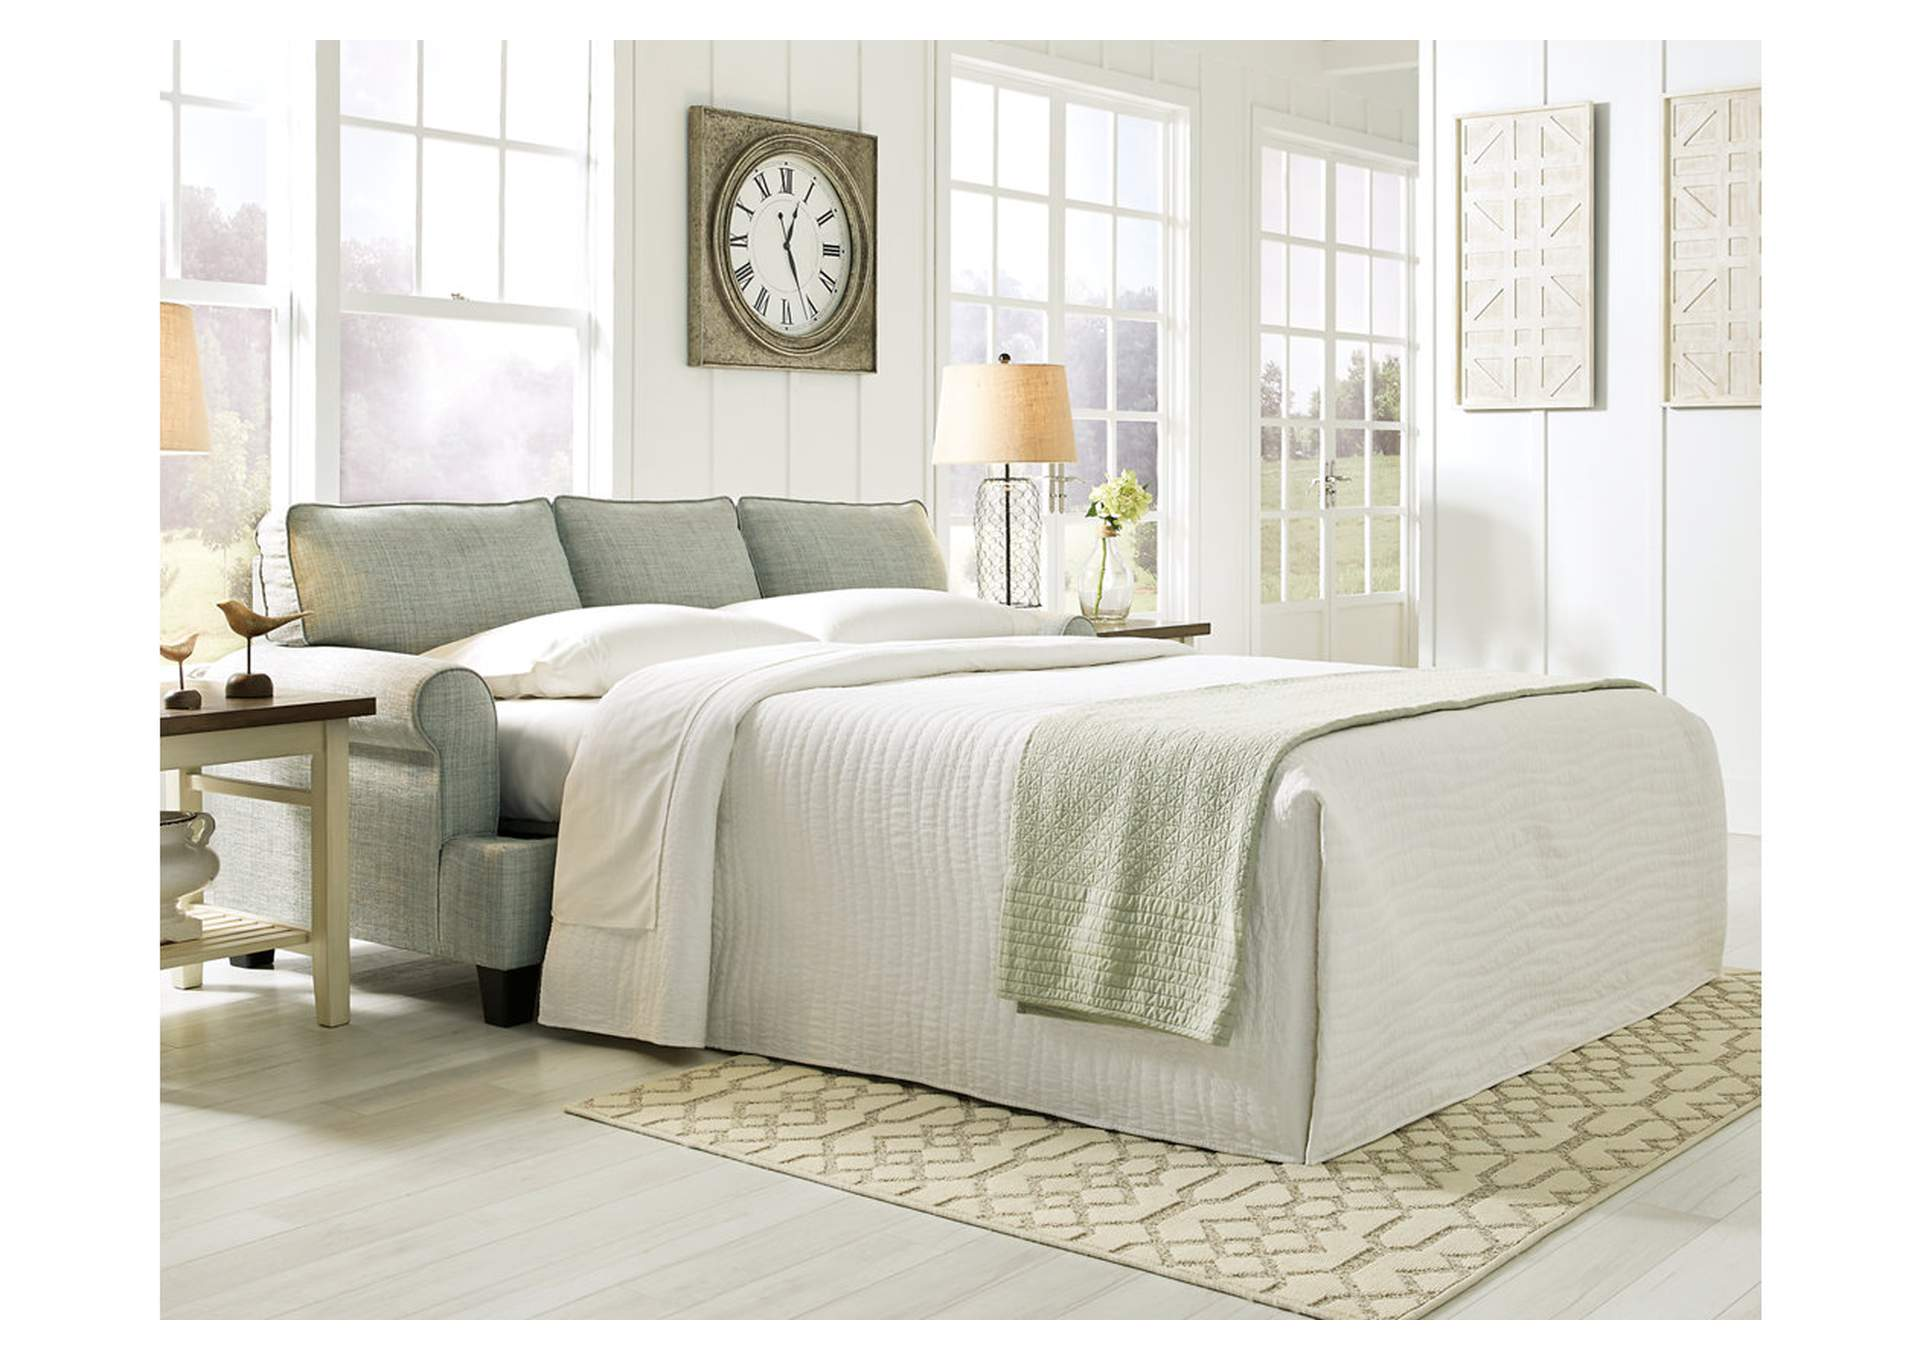 Kilarney Mist Queen Sofa Sleeper,Signature Design By Ashley